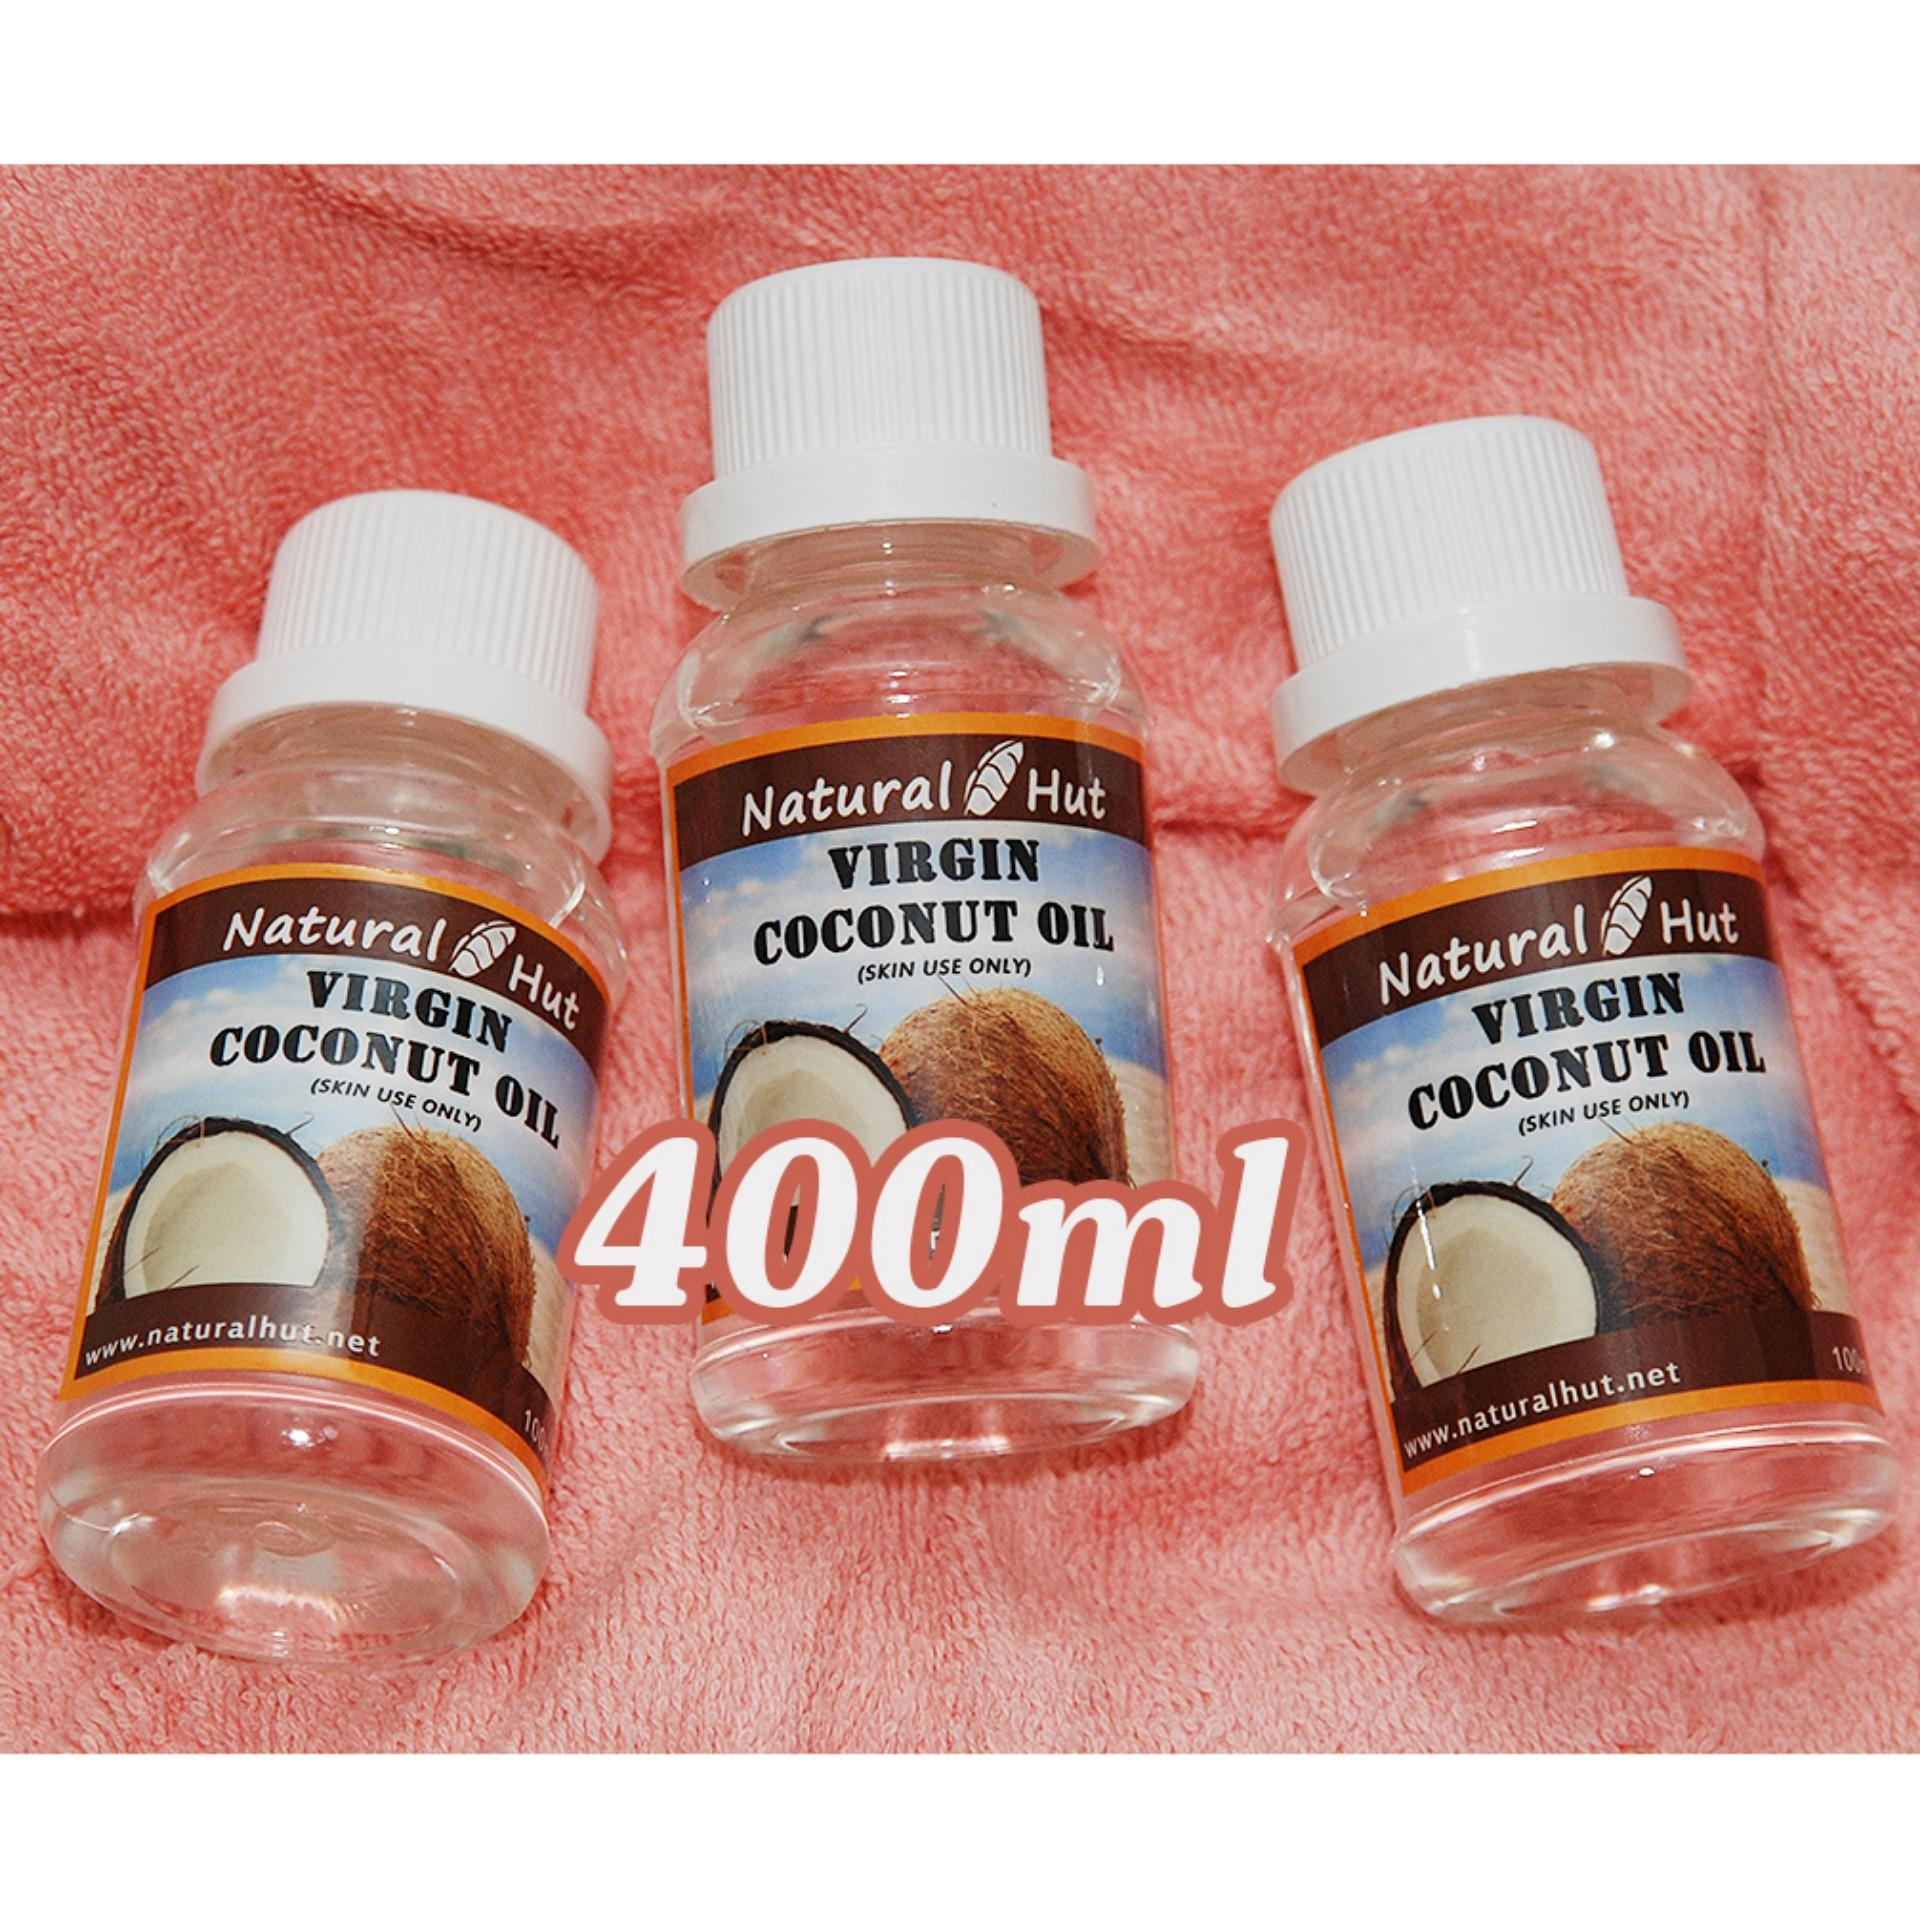 ... Natural Hut - Pure Virgin Coconut Oil (Vco) 400ml ...